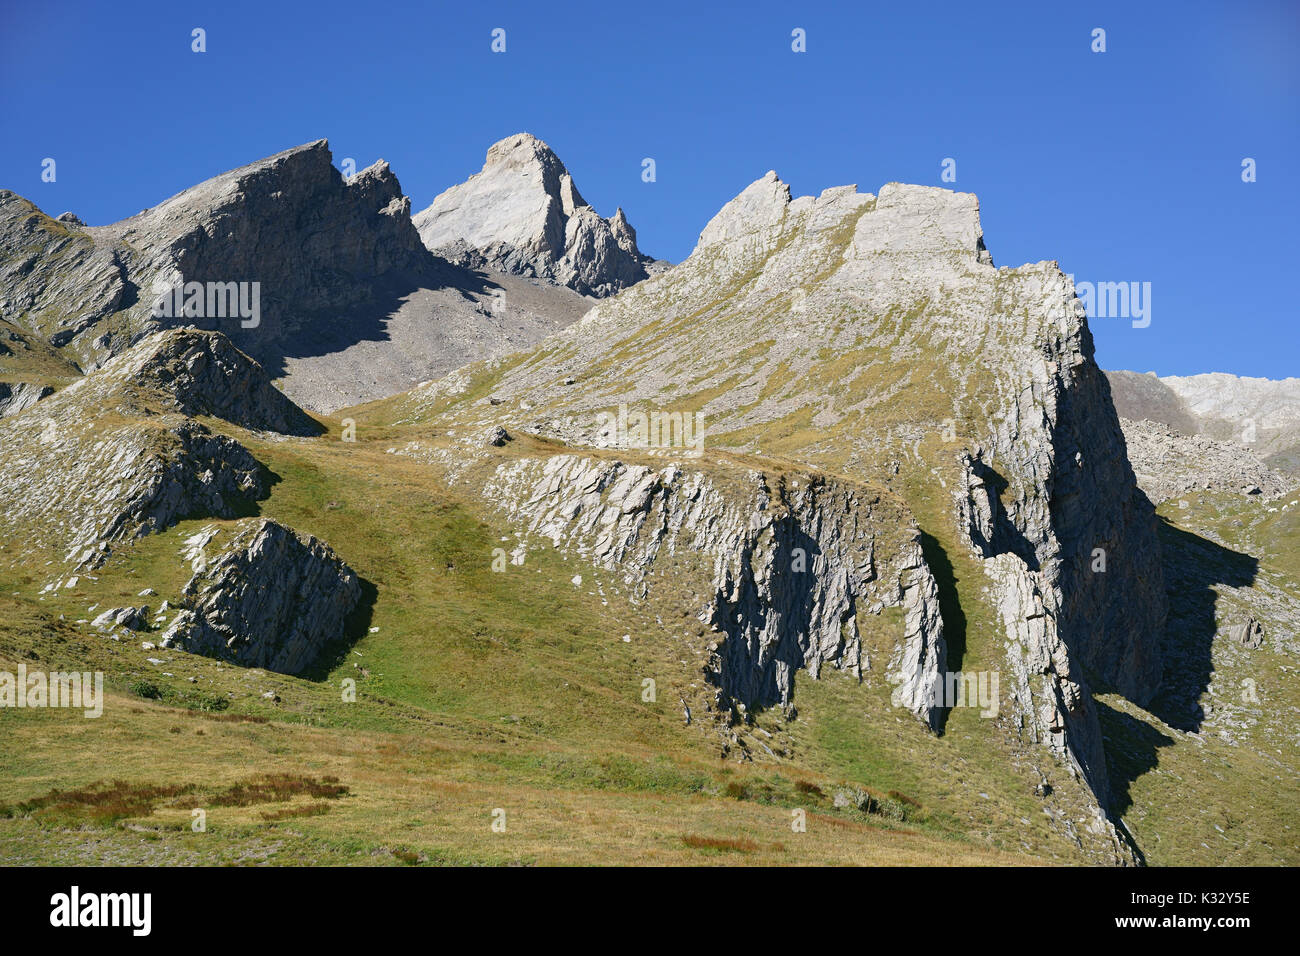 RUGGED LANDSCAPE ON THE ITALIAN SIDE OF PIC D'ASTI (3219m amsl). Above the village of Chianale, Province of Cuneo, Piedmont, Italy. - Stock Image